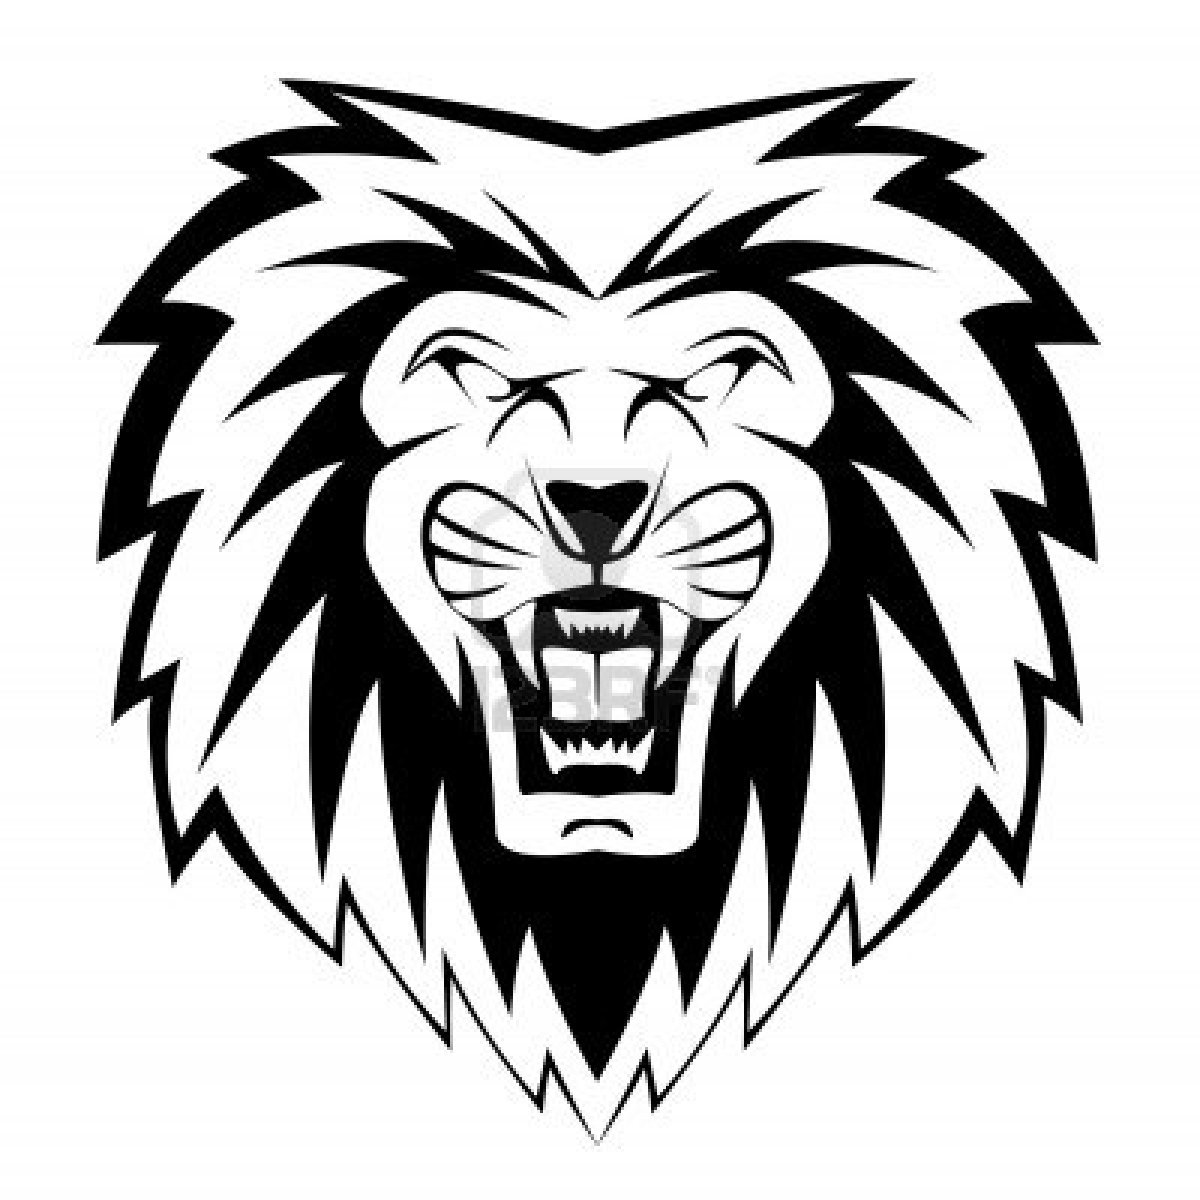 Free Picture Of A Lion Face Download Free Clip Art Free Clip Art On Clipart Library